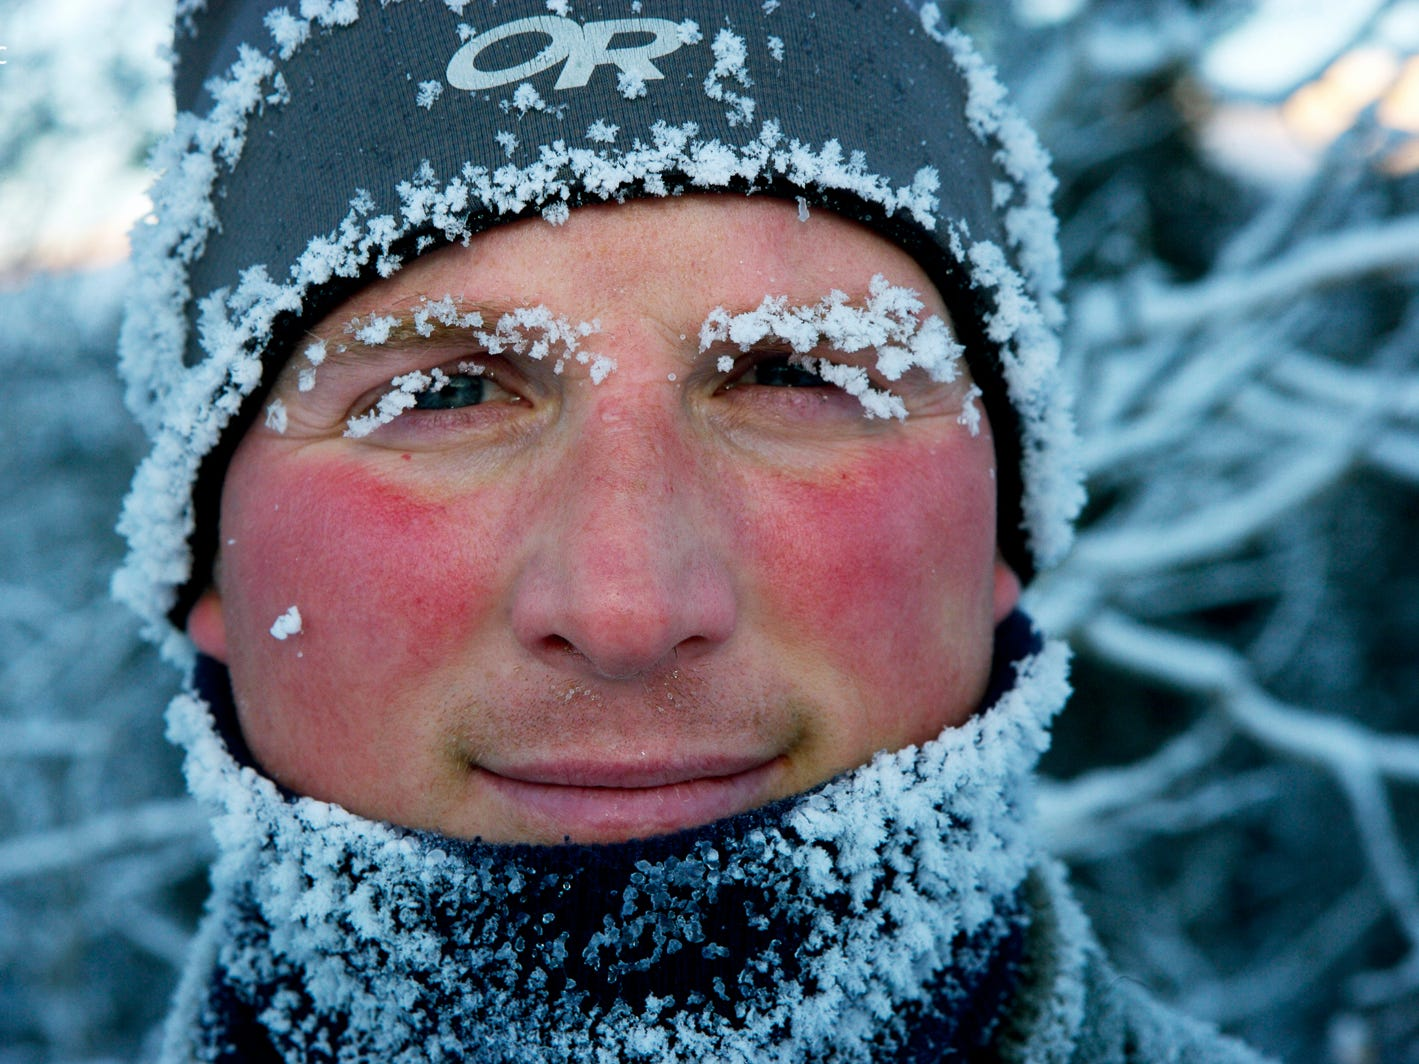 Frost crystals and rosy cheeks on a young man's face. The exhibition is organized and traveled by the National Geographic Society